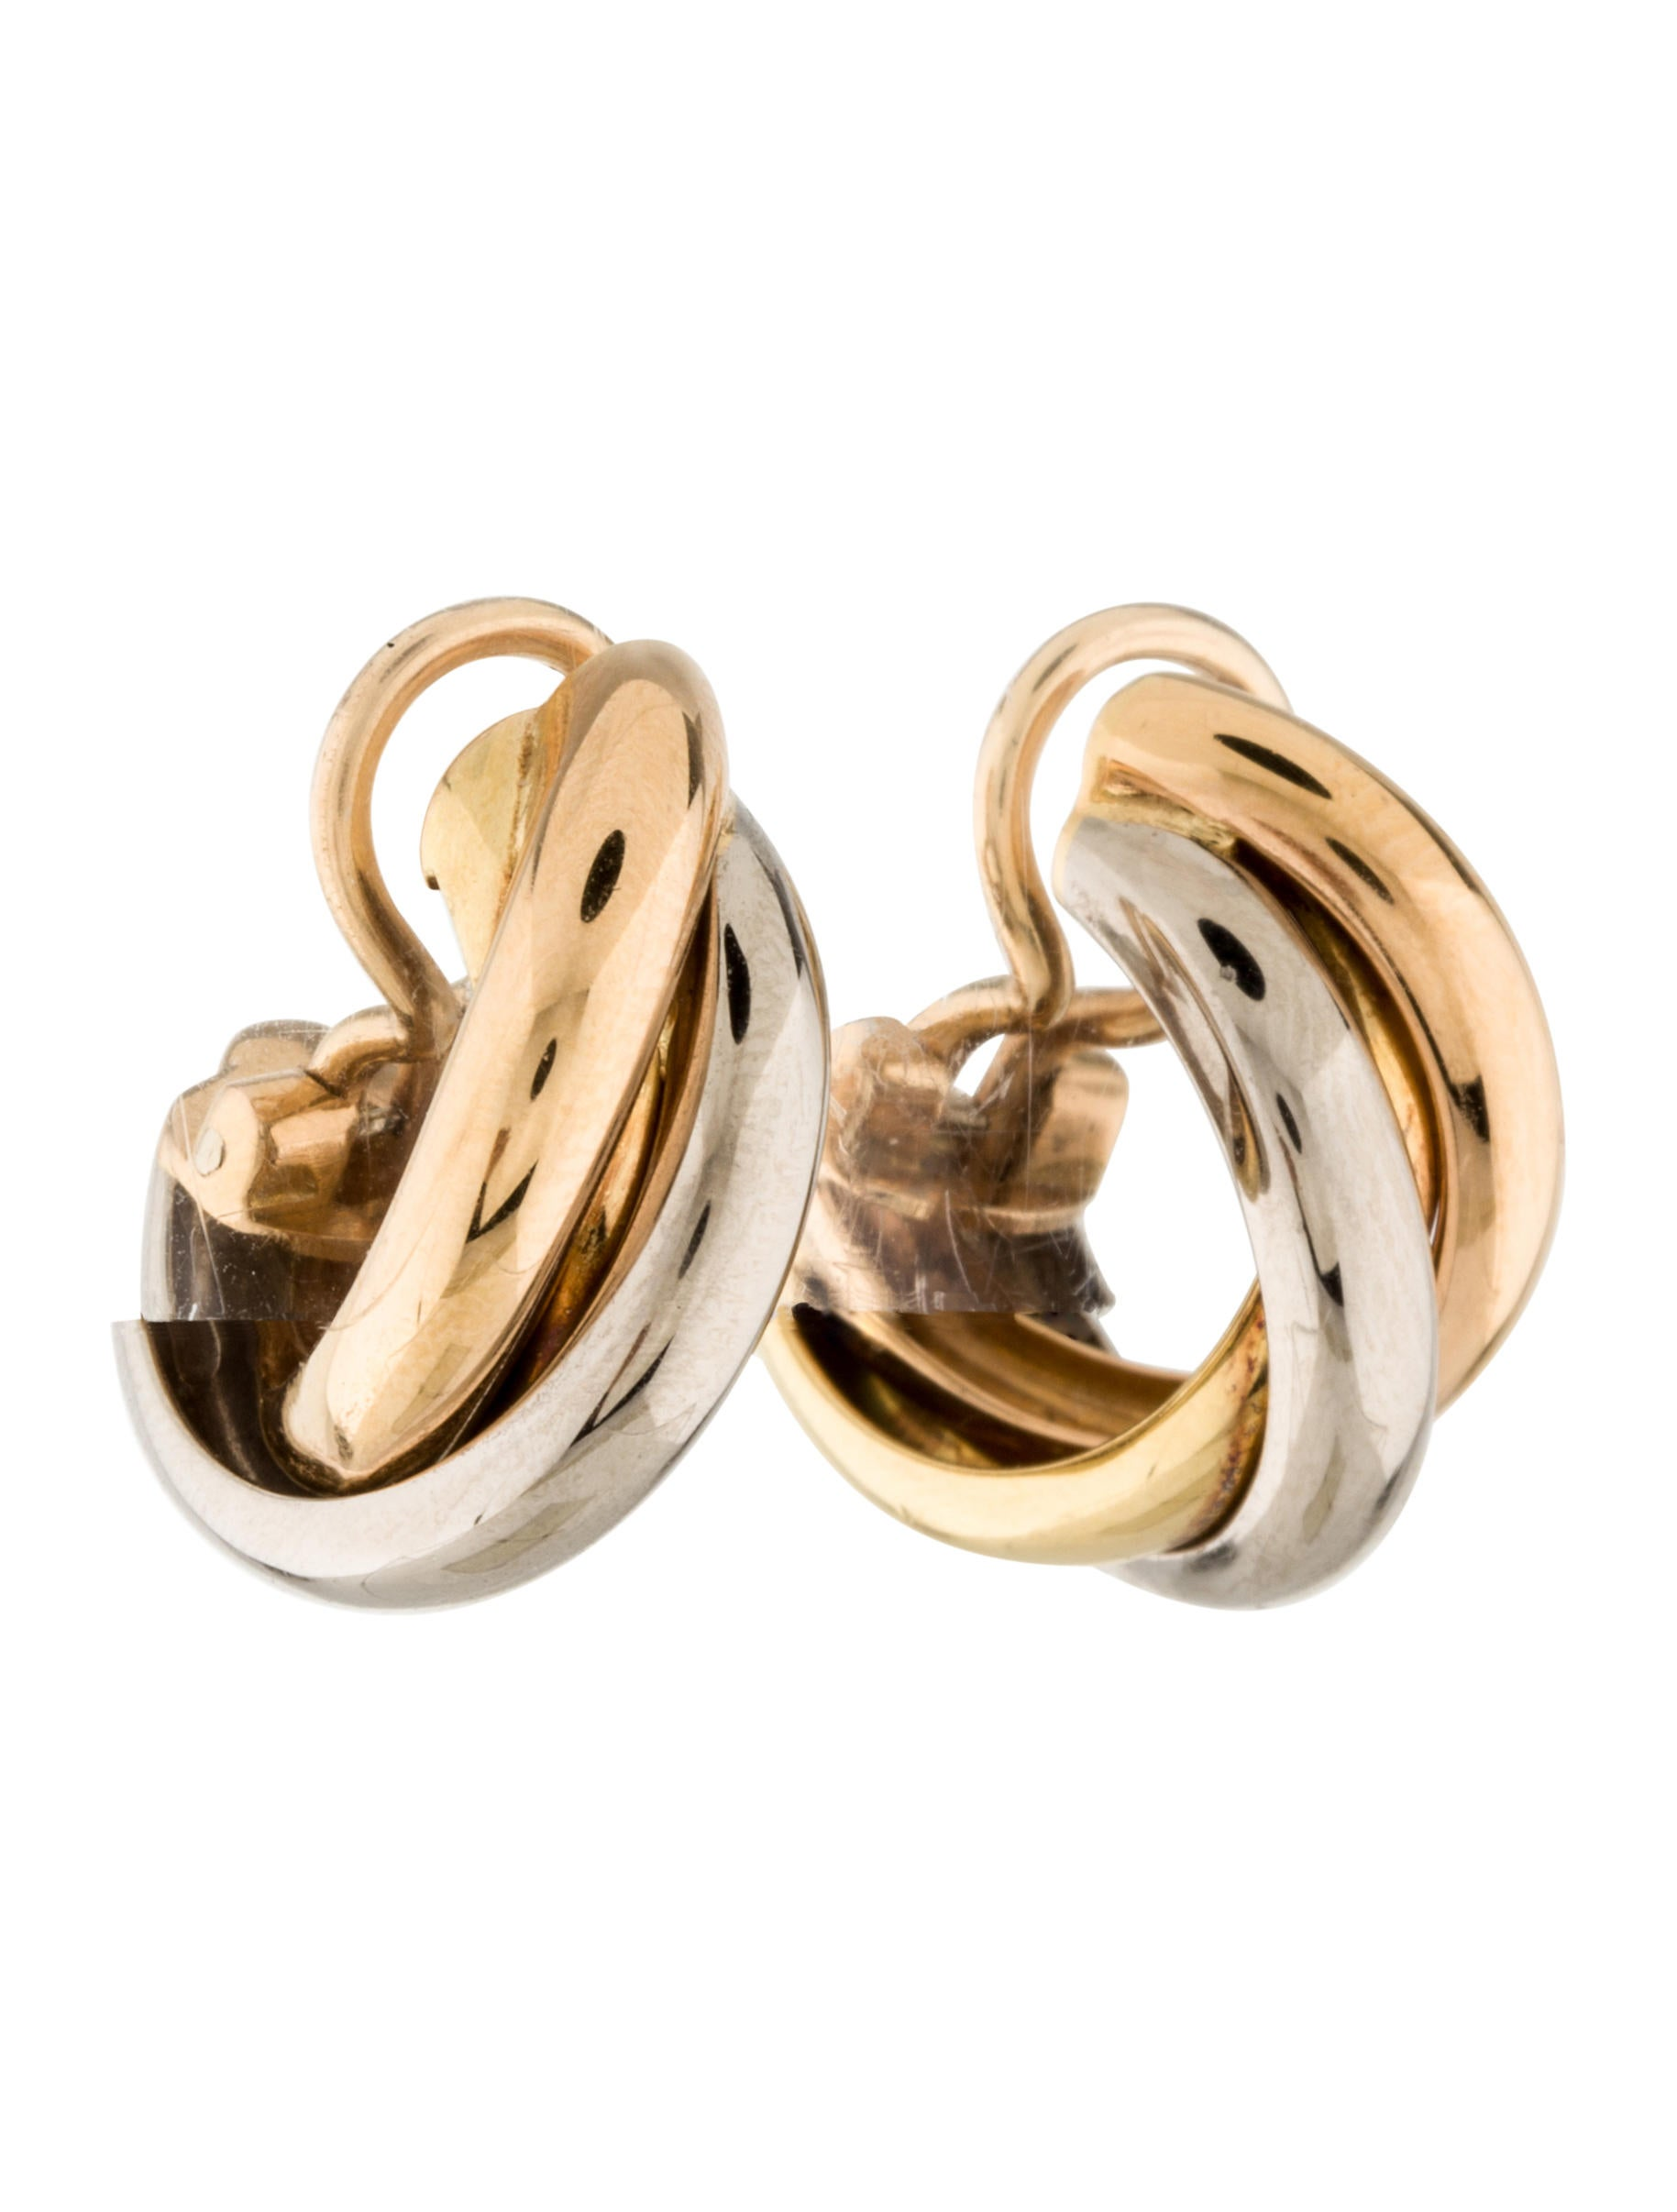 en trinity by cartier de number timelesspriceless earrings product ref gold